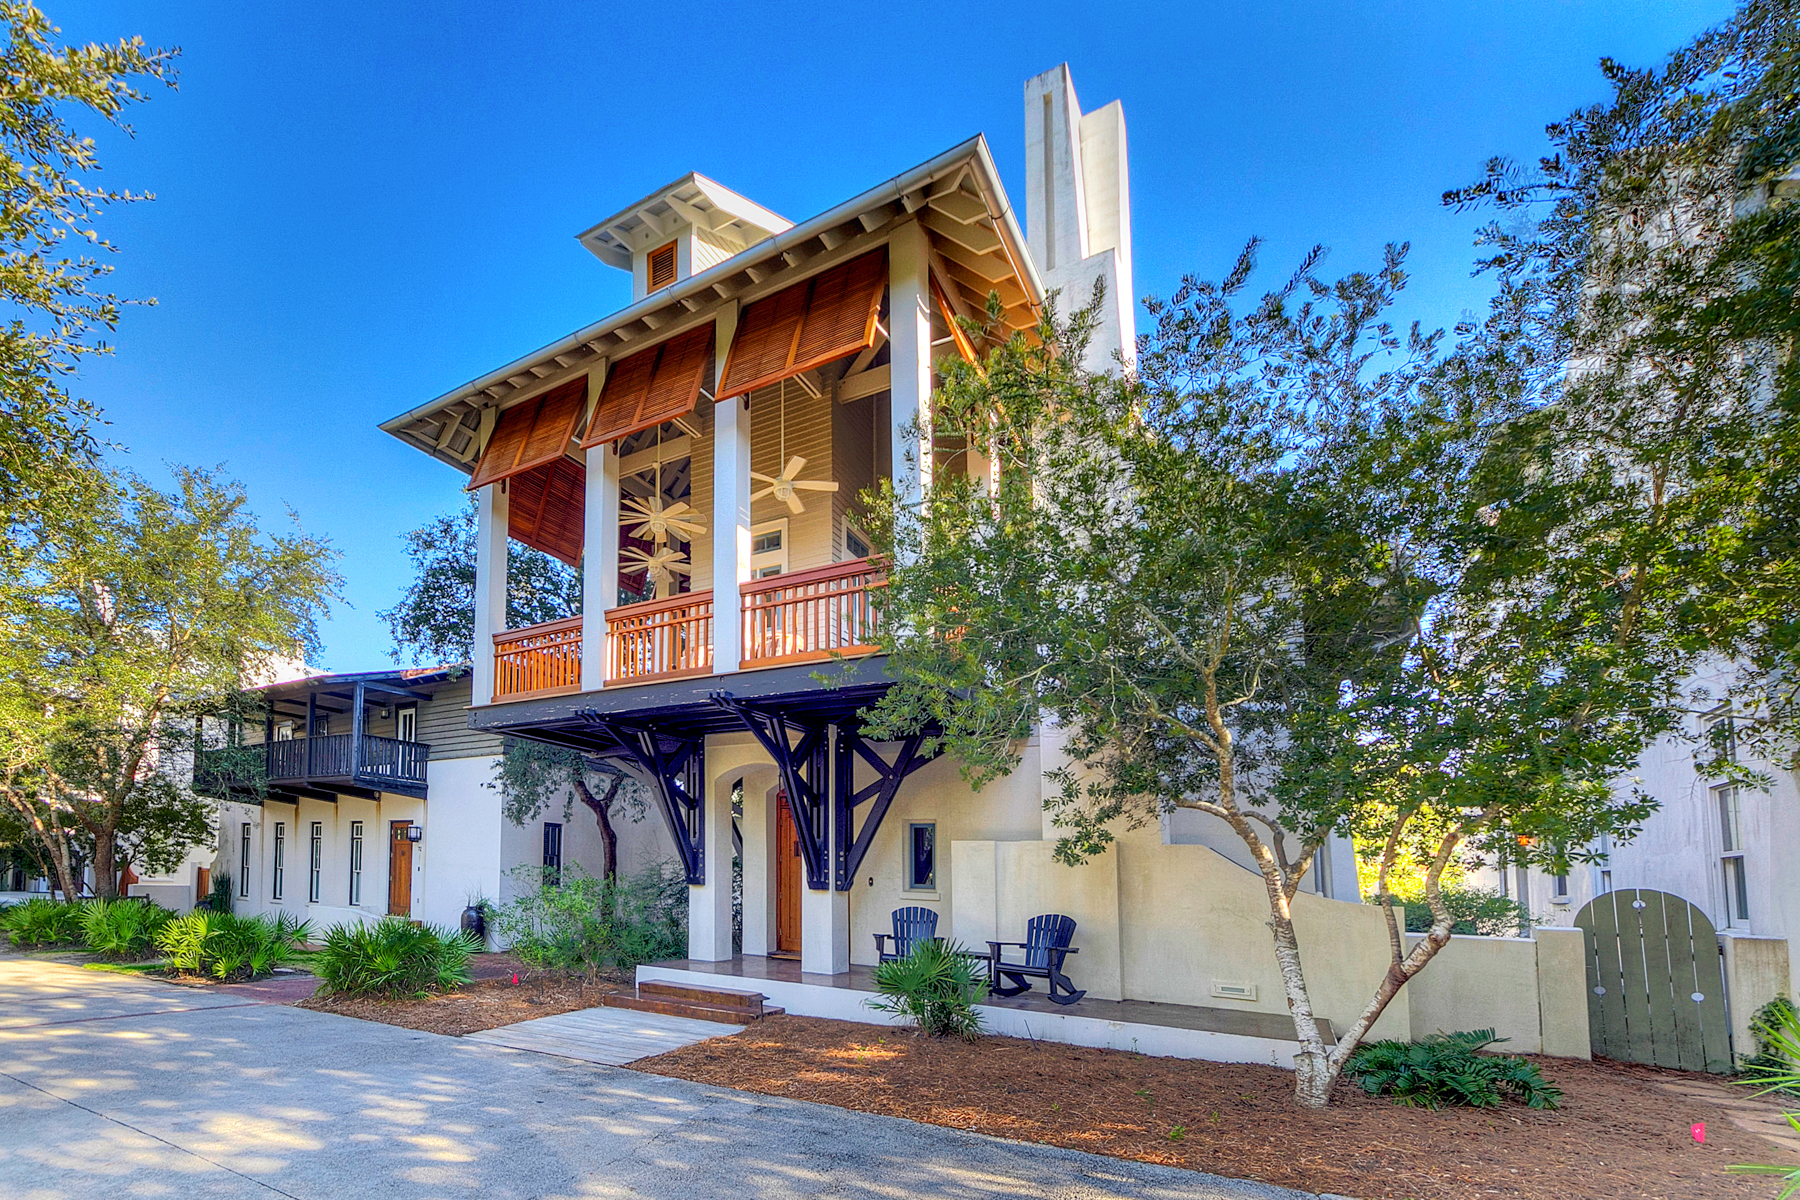 Moradia para Venda às FINELY APPOINTED ROSEMARY BEACH HOME 108 Bourne Lane, Rosemary Beach, Rosemary Beach, Florida, 32461 Estados Unidos